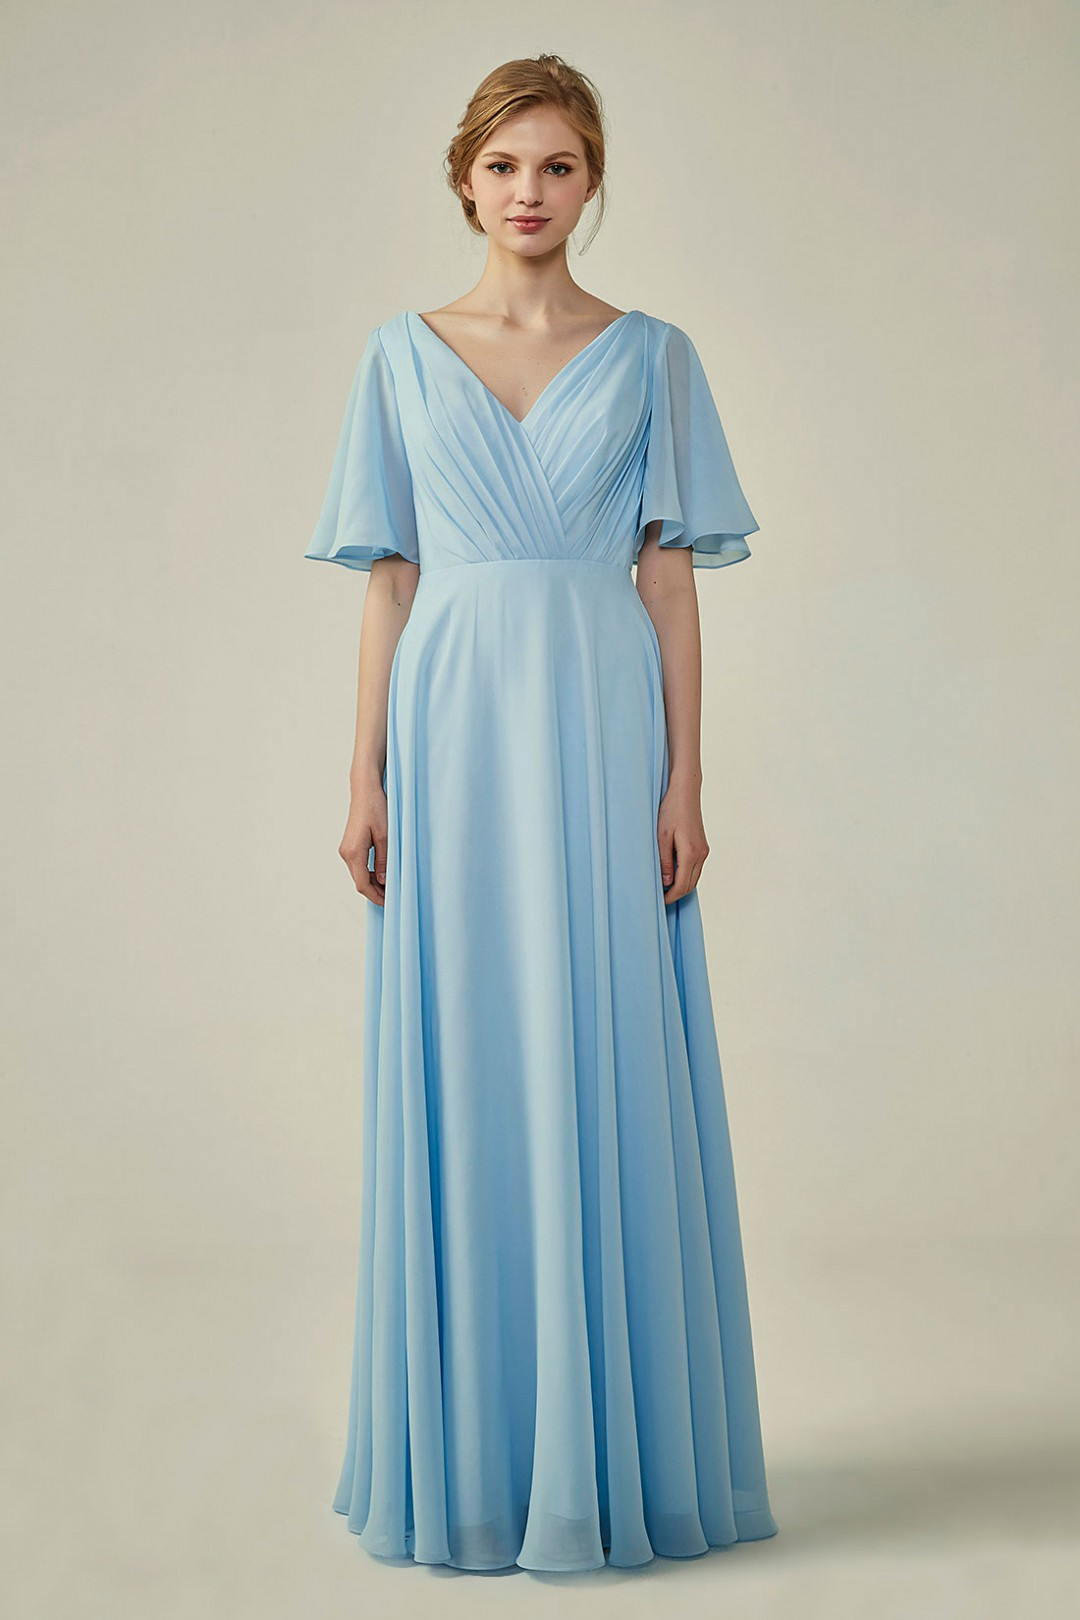 Casual V-Neck Flutter Chiffon Bridesmaid Dress with Sleeves 499c3b991